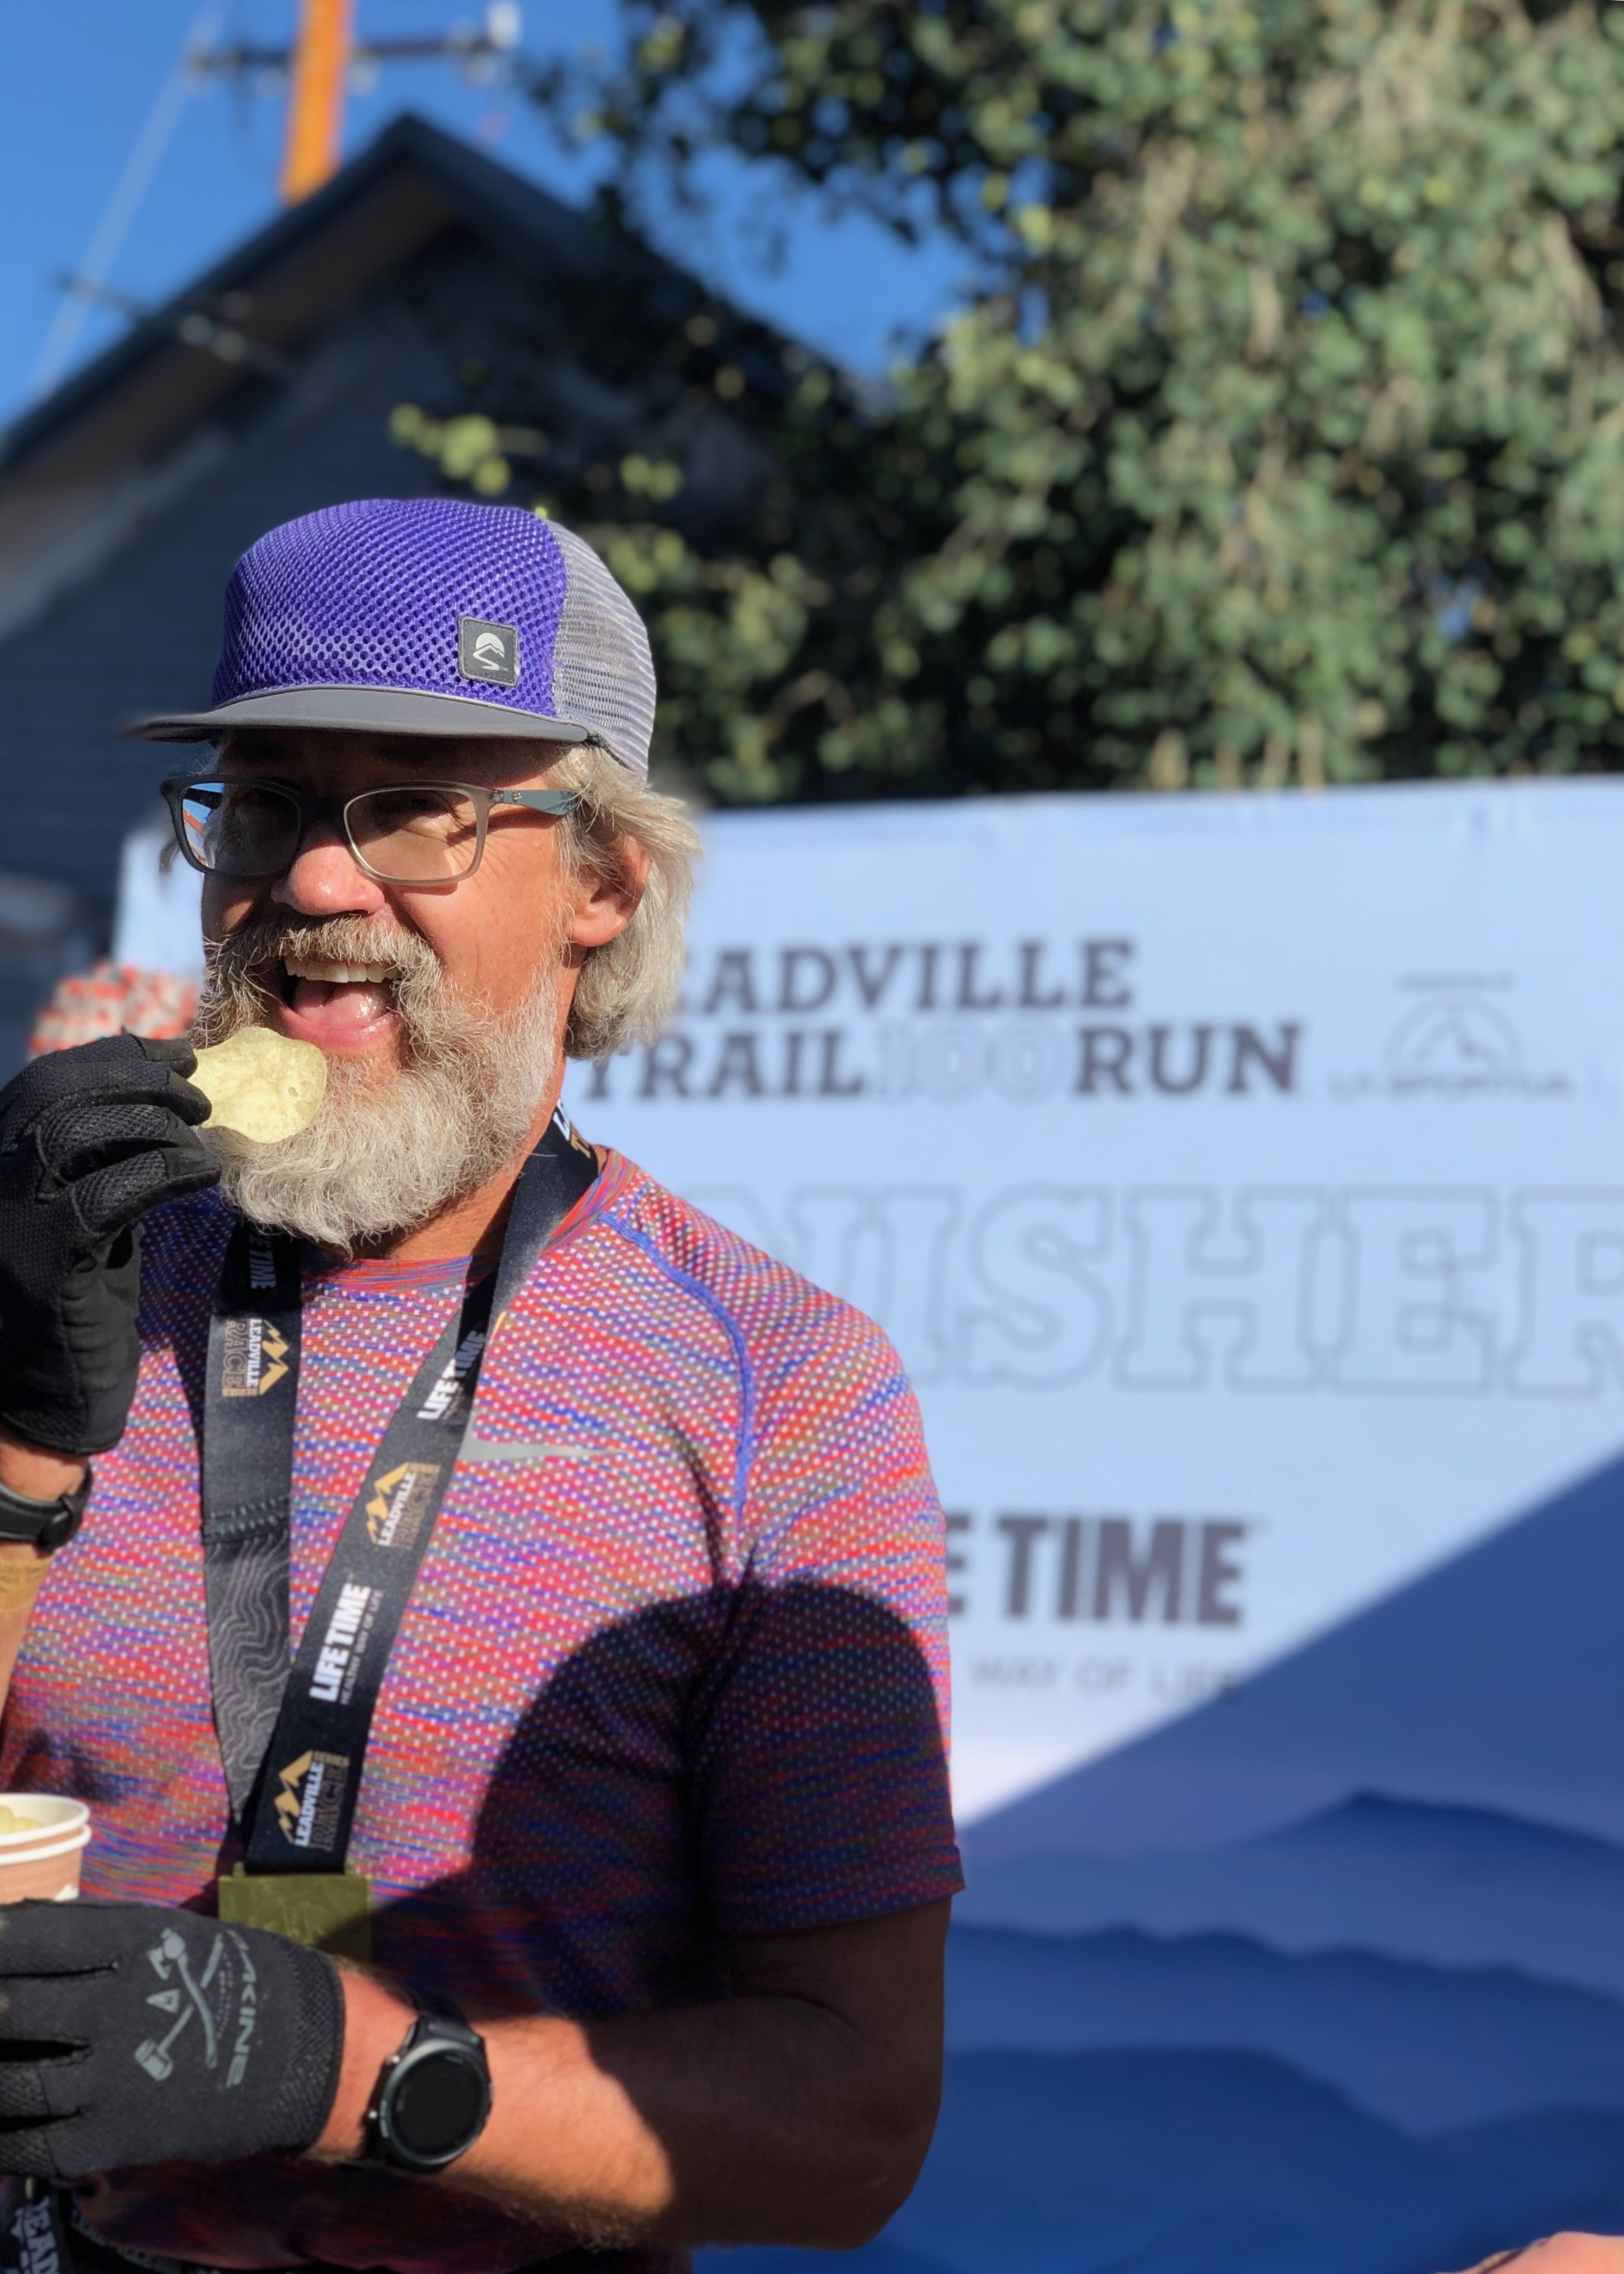 A well-deserved potato chip at the finish line